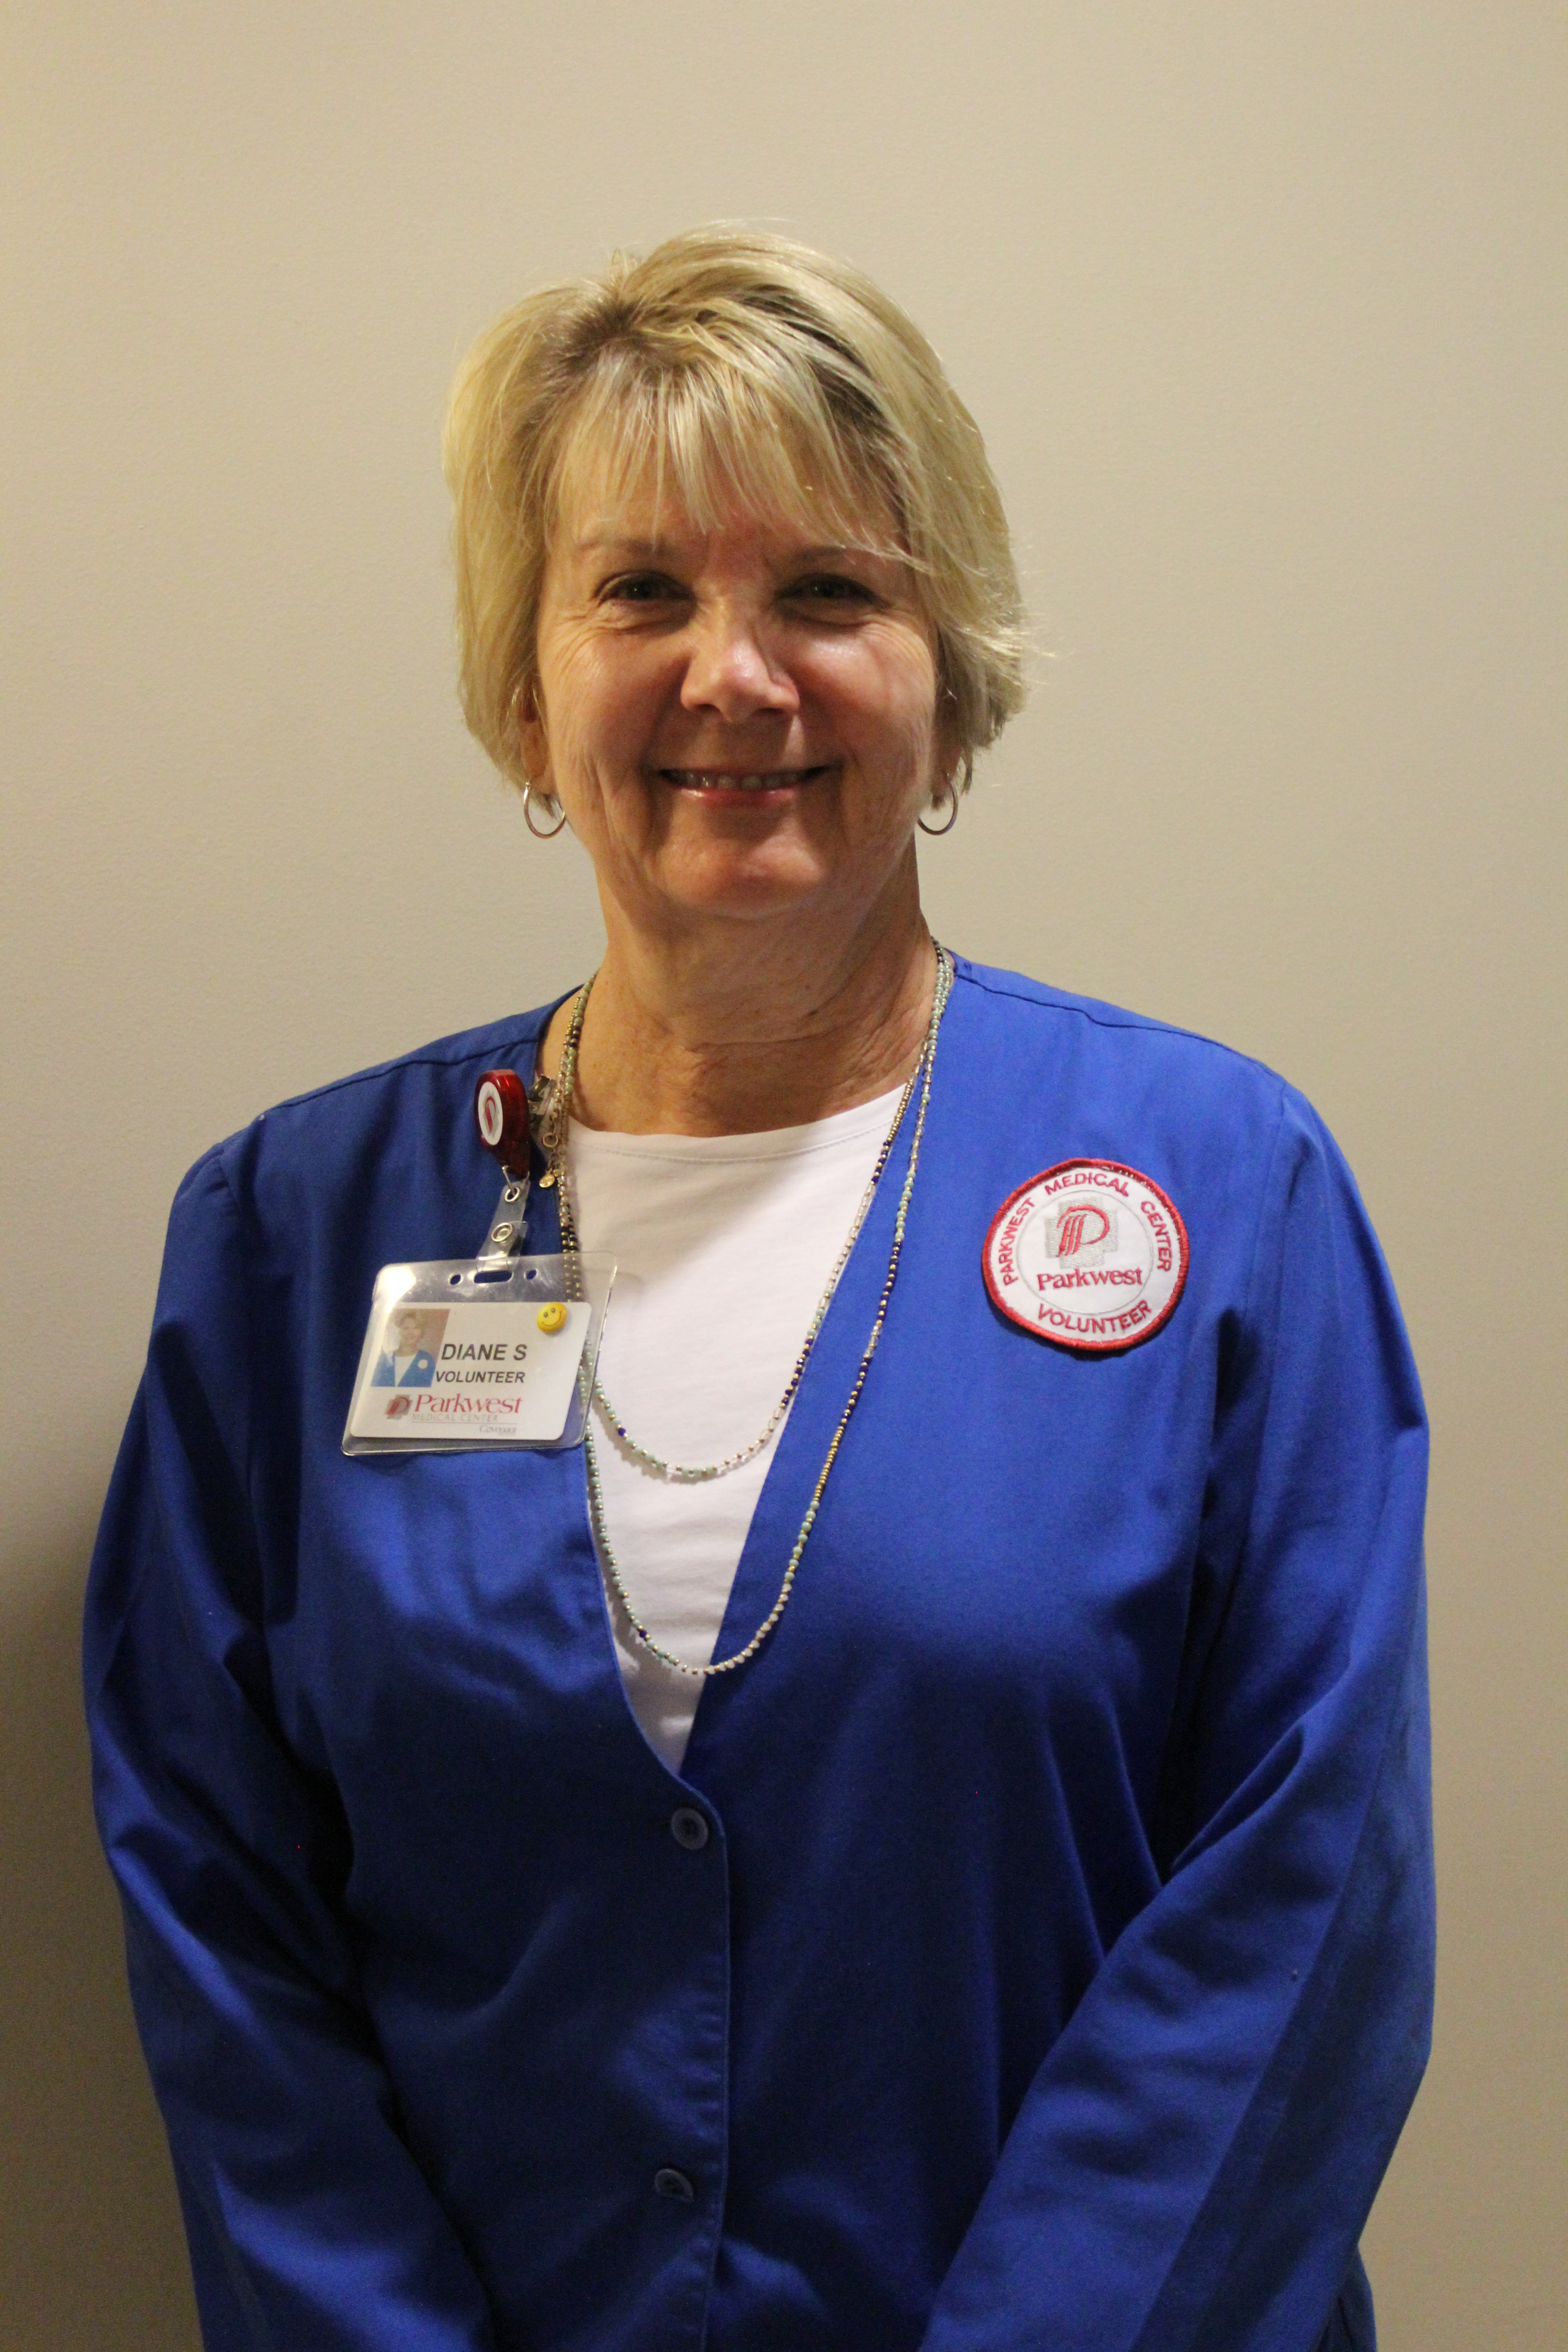 Hospital volunteers enhance the patient and family experience